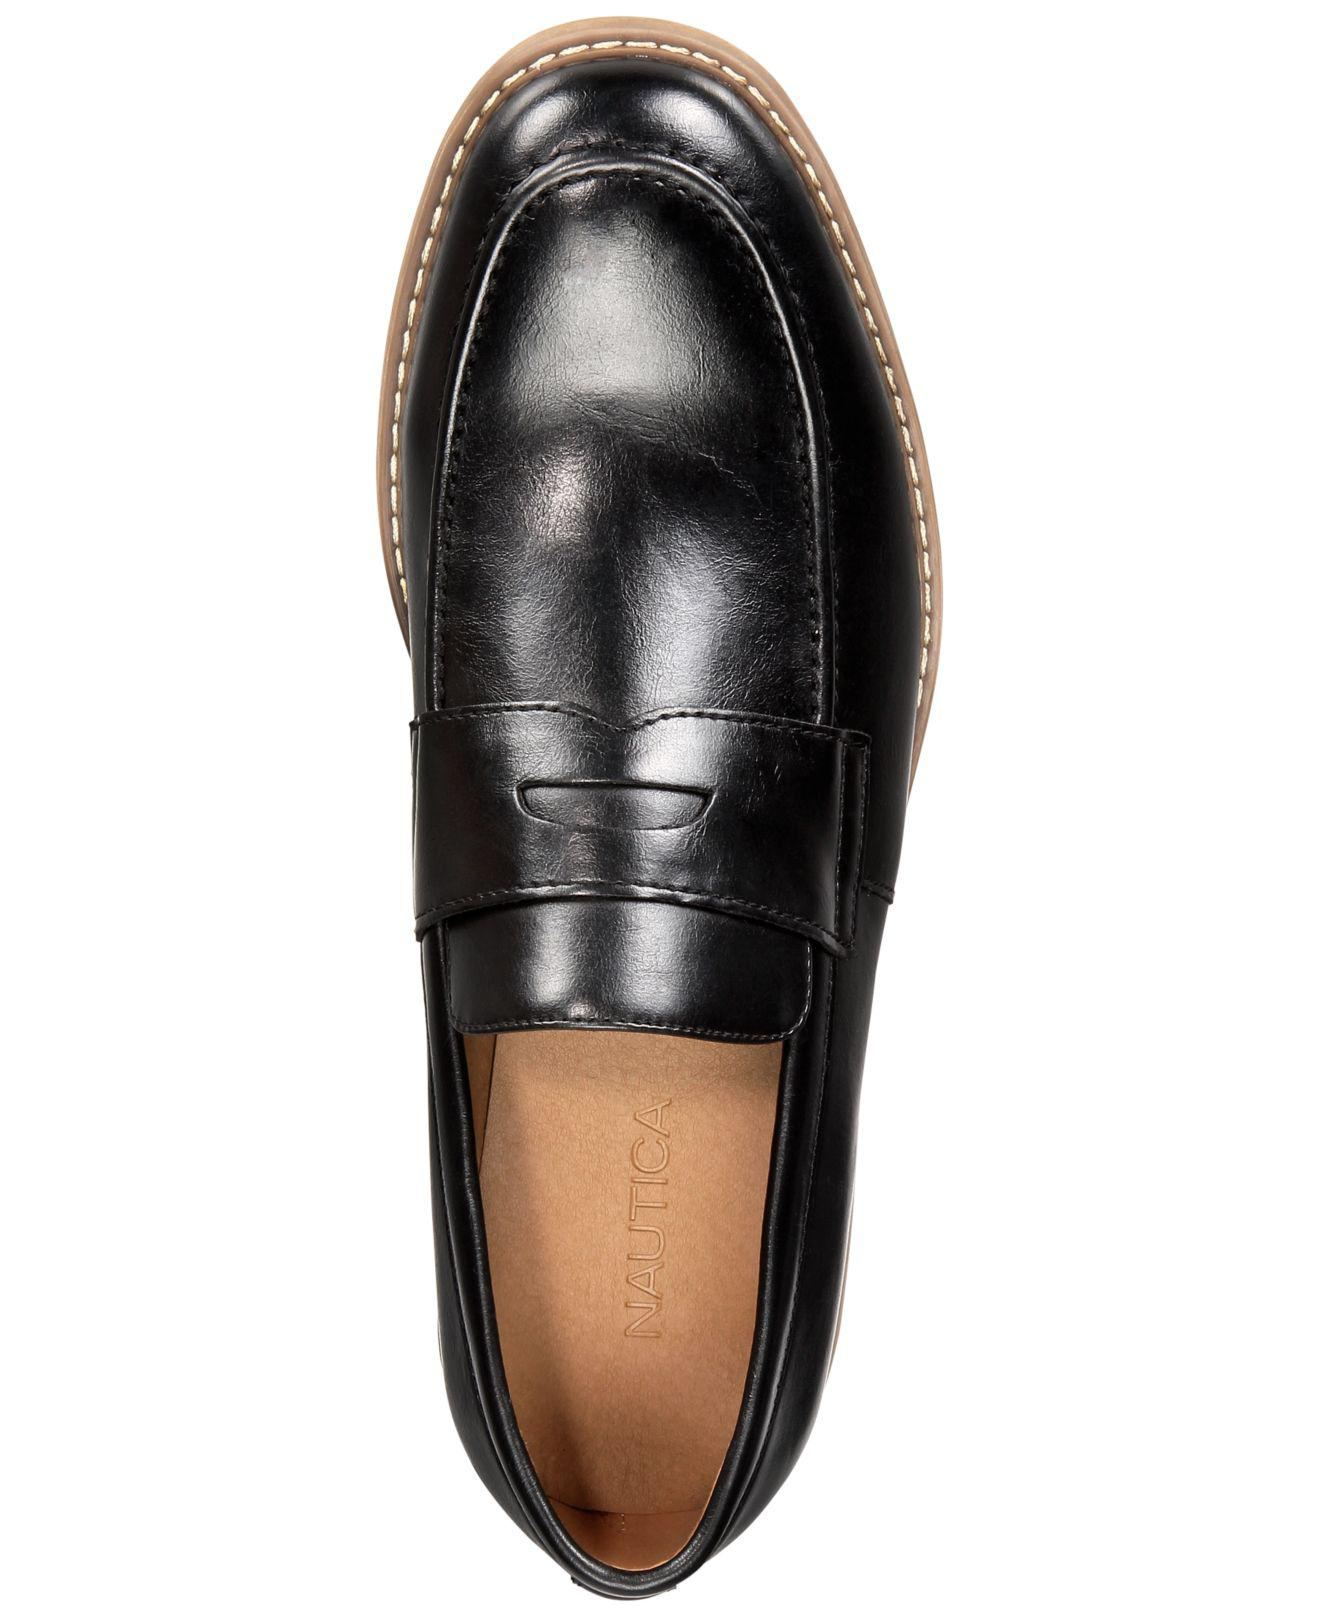 448d015522f Lyst - Nautica Elias Penny Loafers in Black for Men